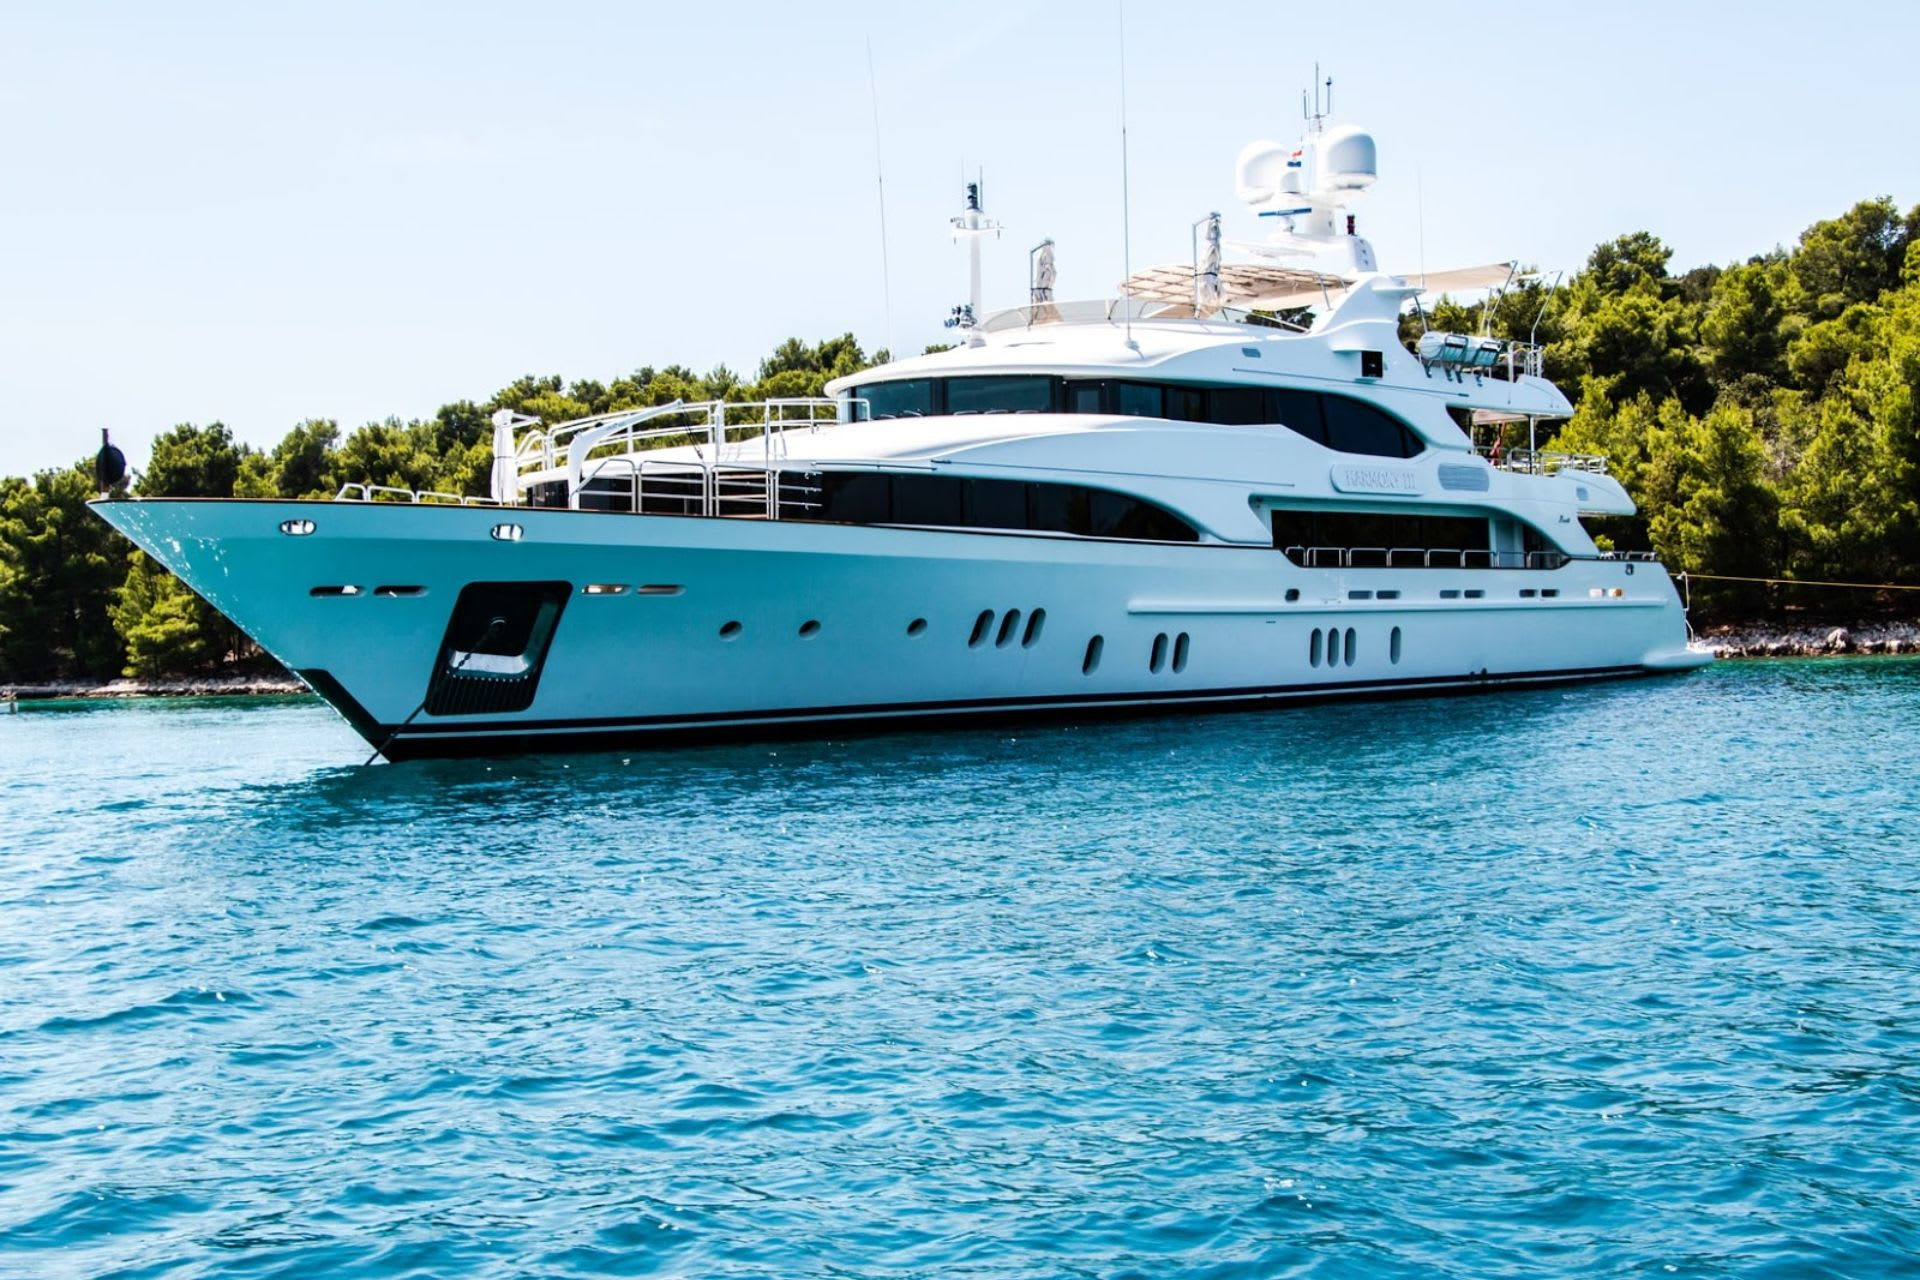 10 Tips for Choosing the Right Yacht for You